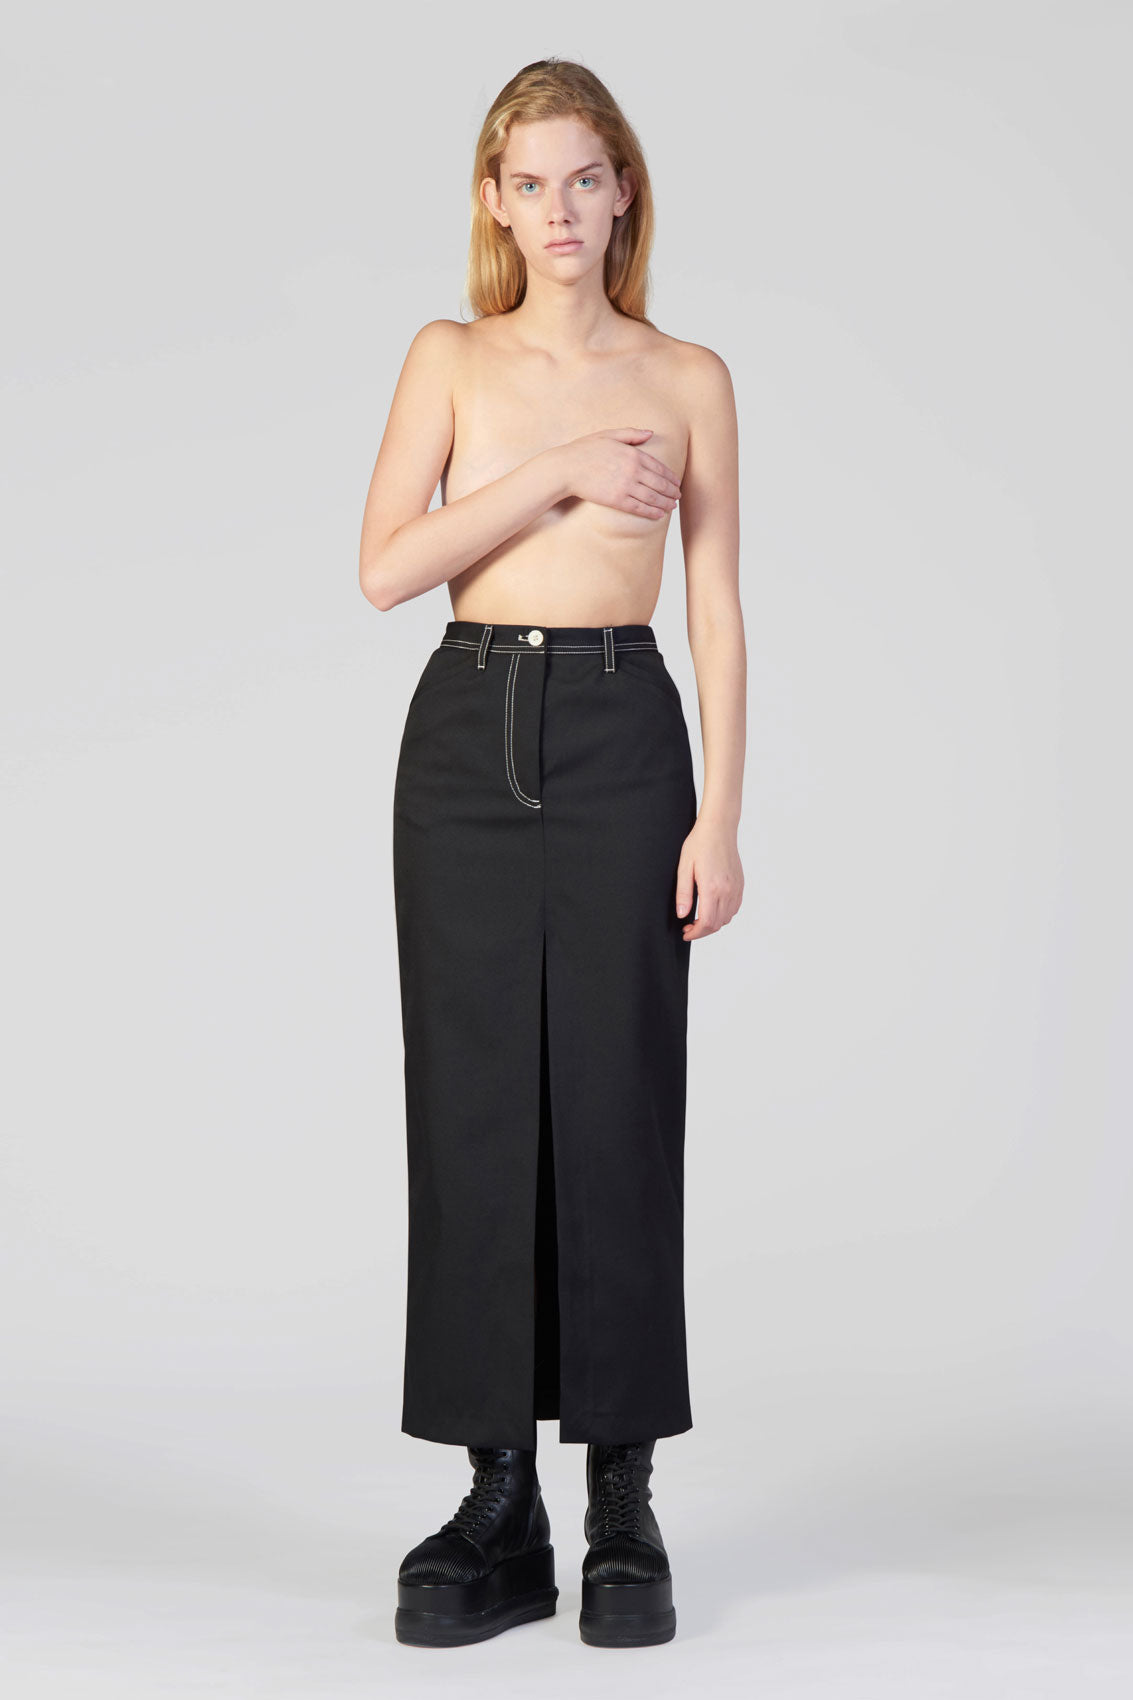 BLACK LONG SKIRT